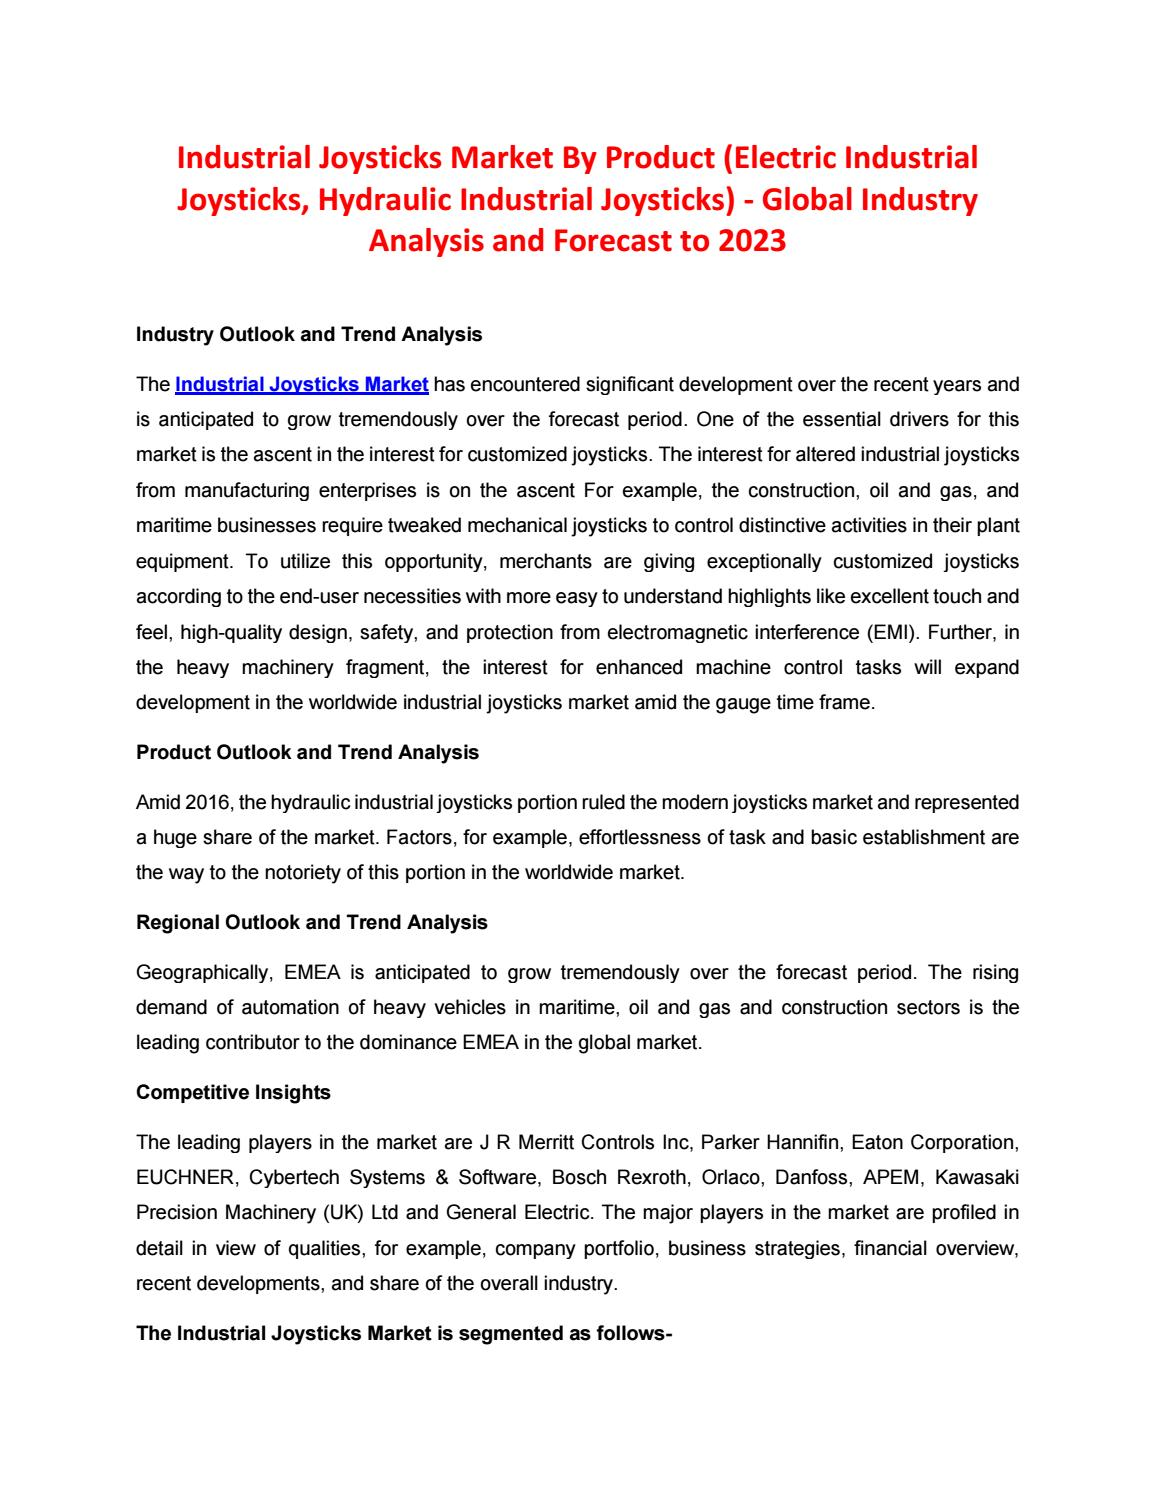 Industrial Joysticks Market by Product (Electric Industrial